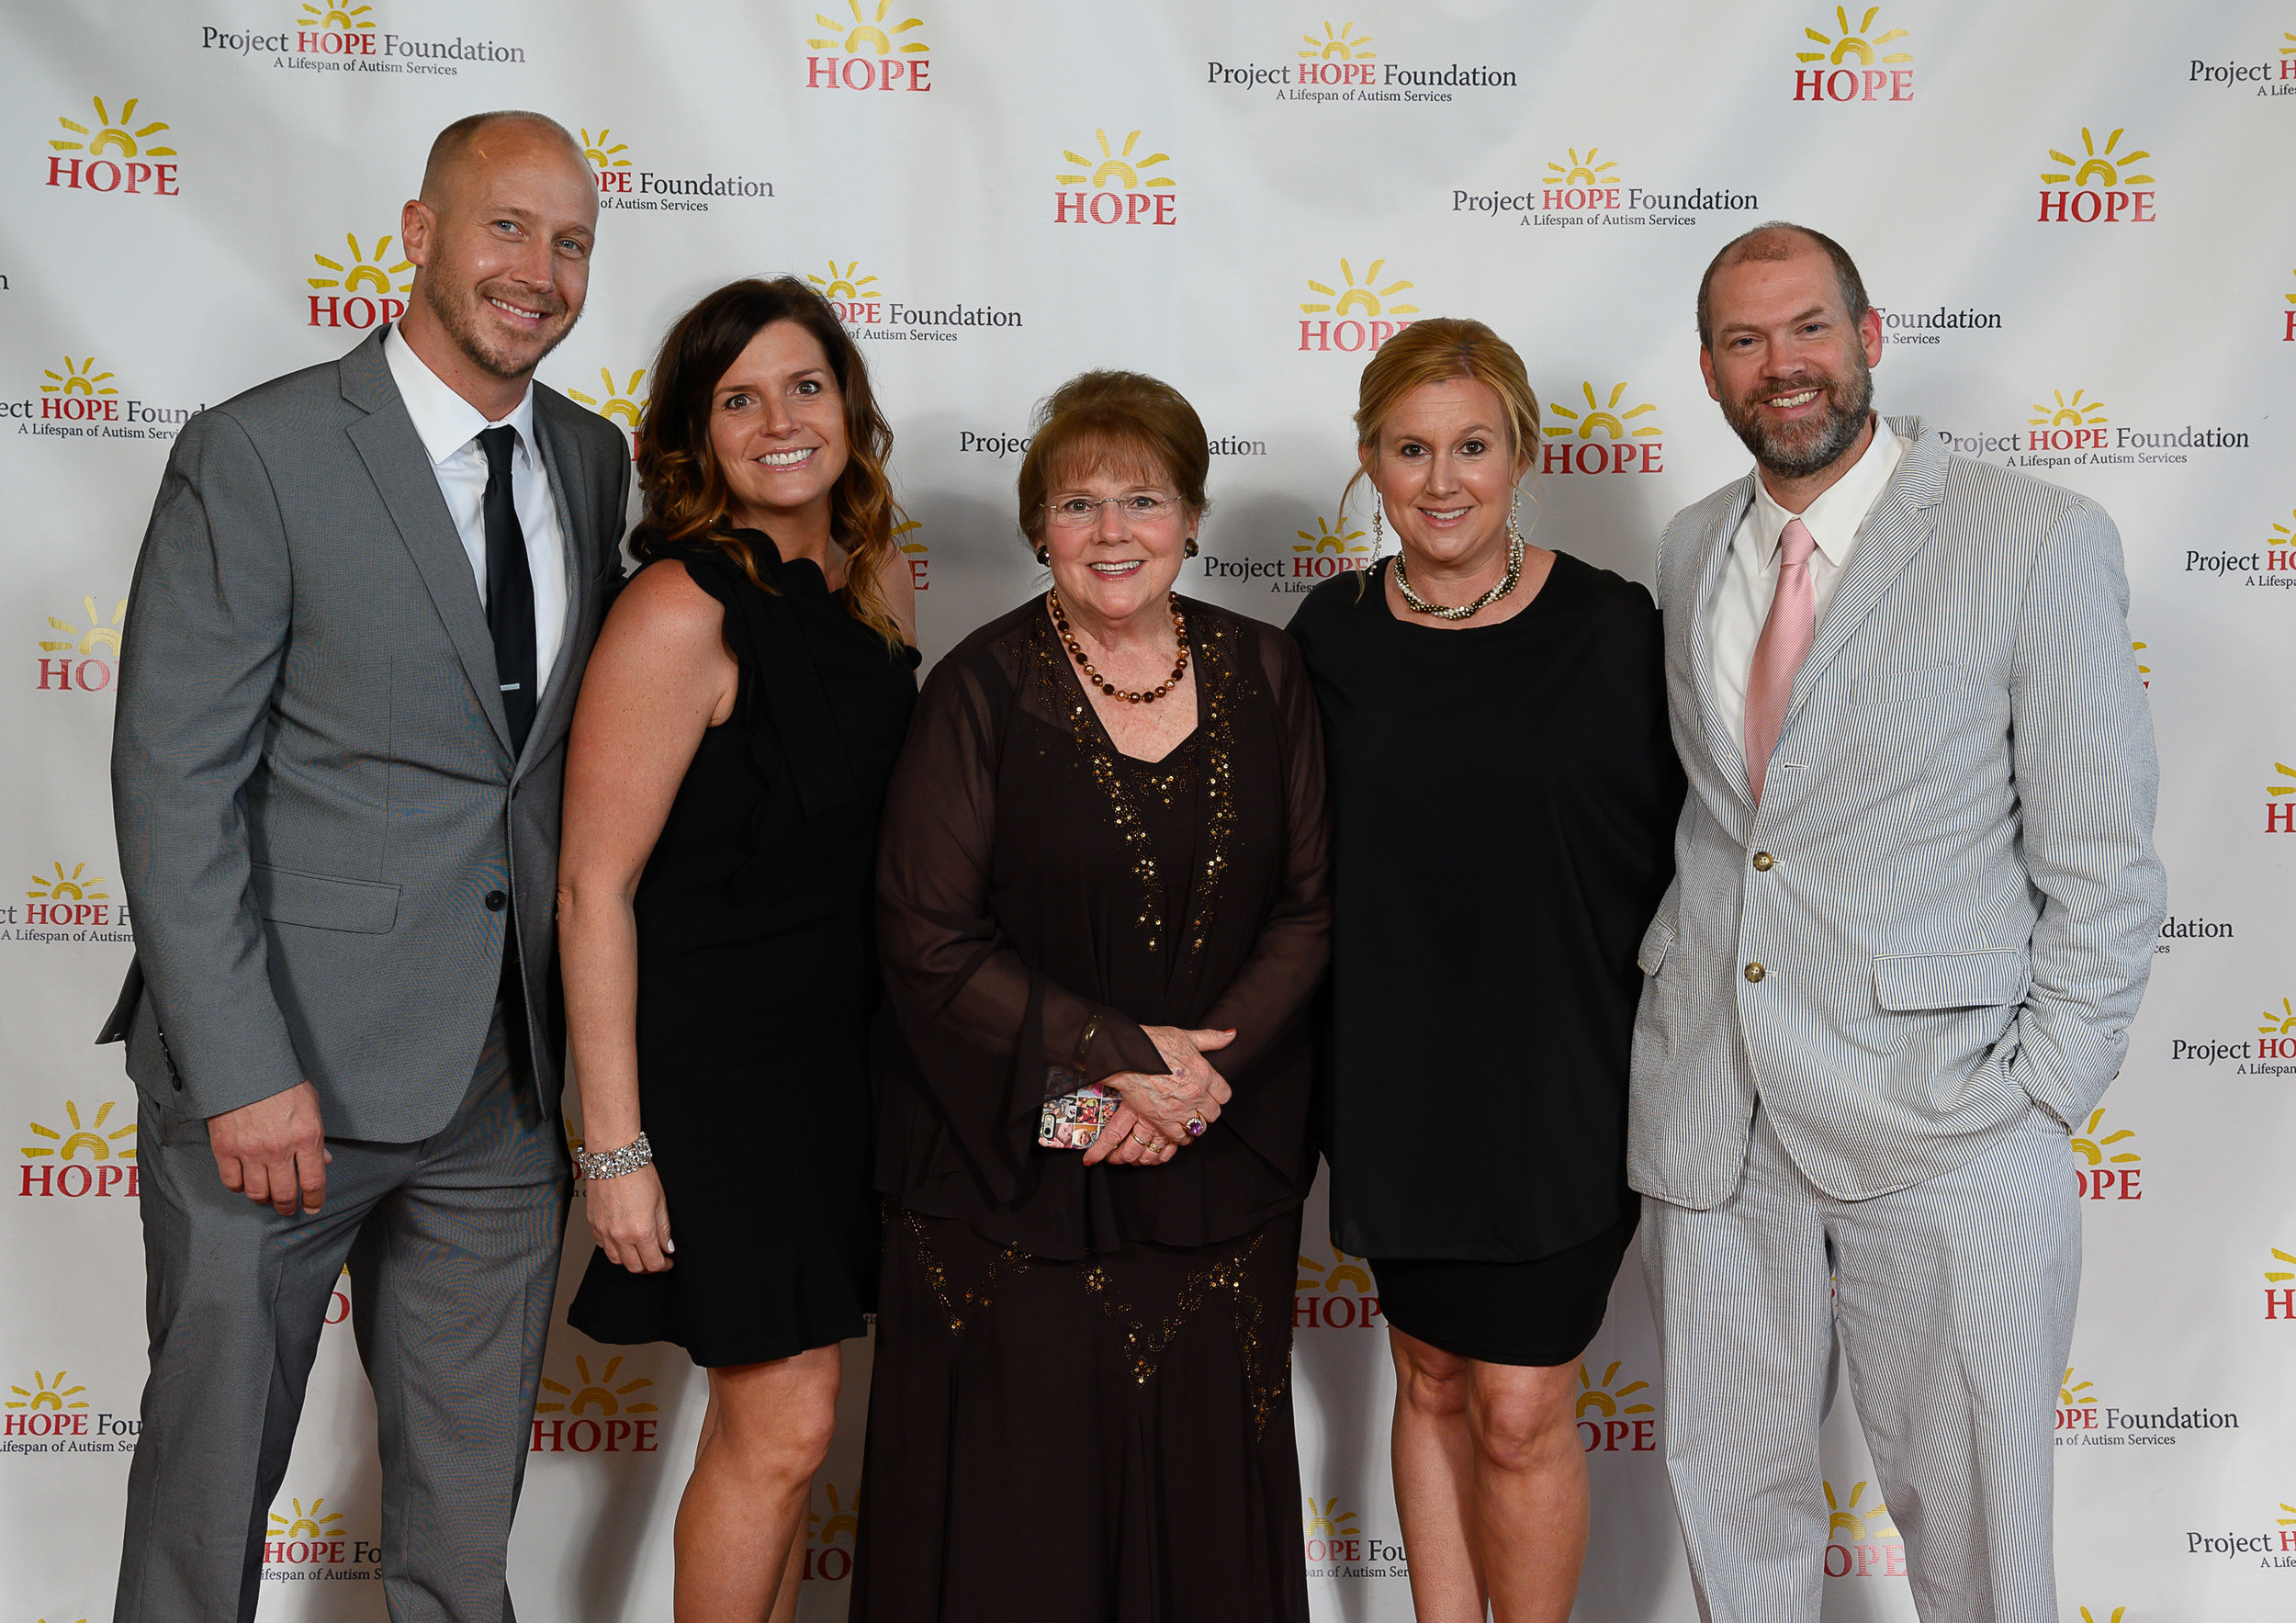 Evening of Hope Gala — Project Hope Foundation